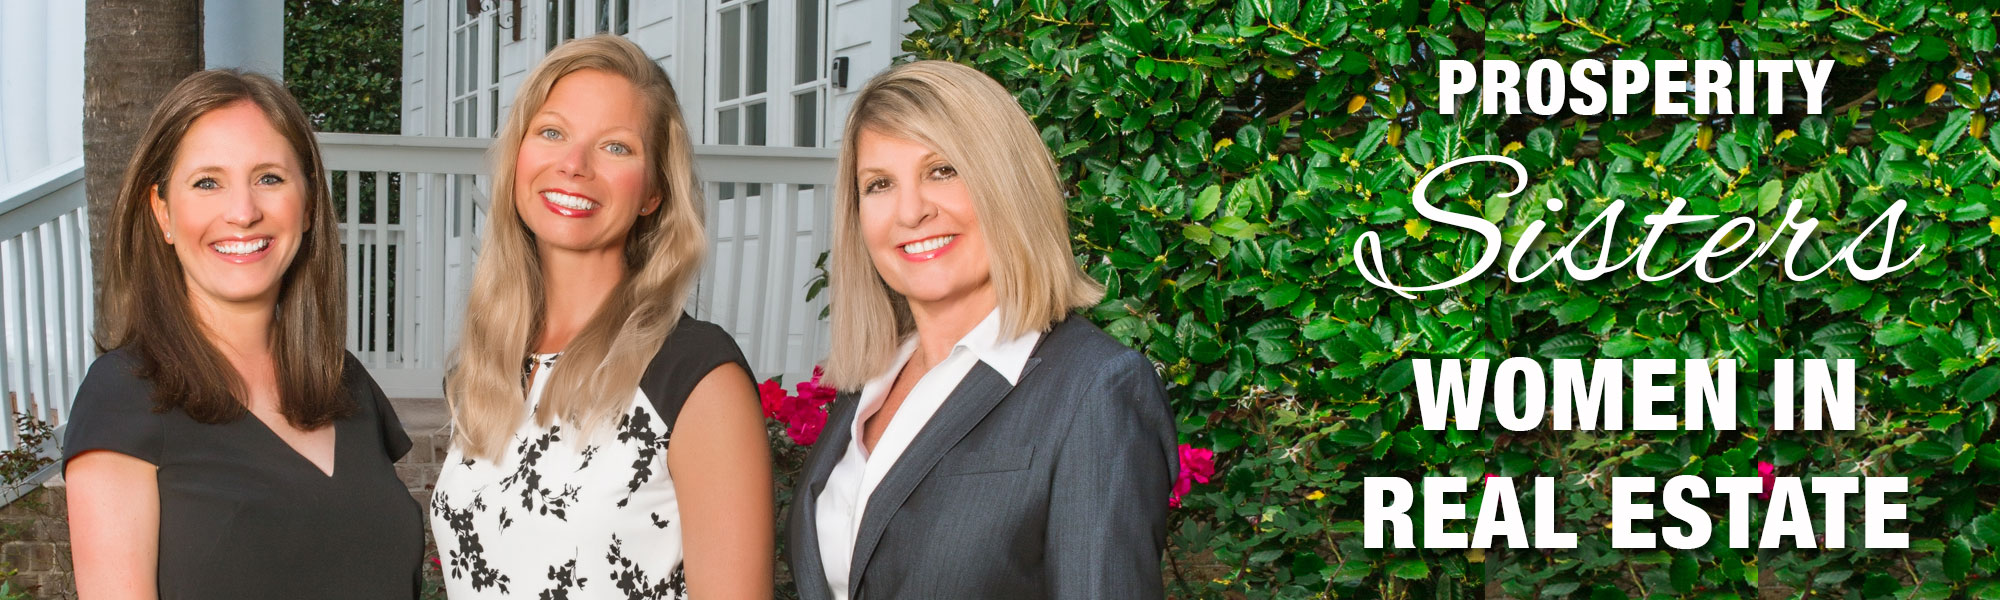 Women in Real Estate